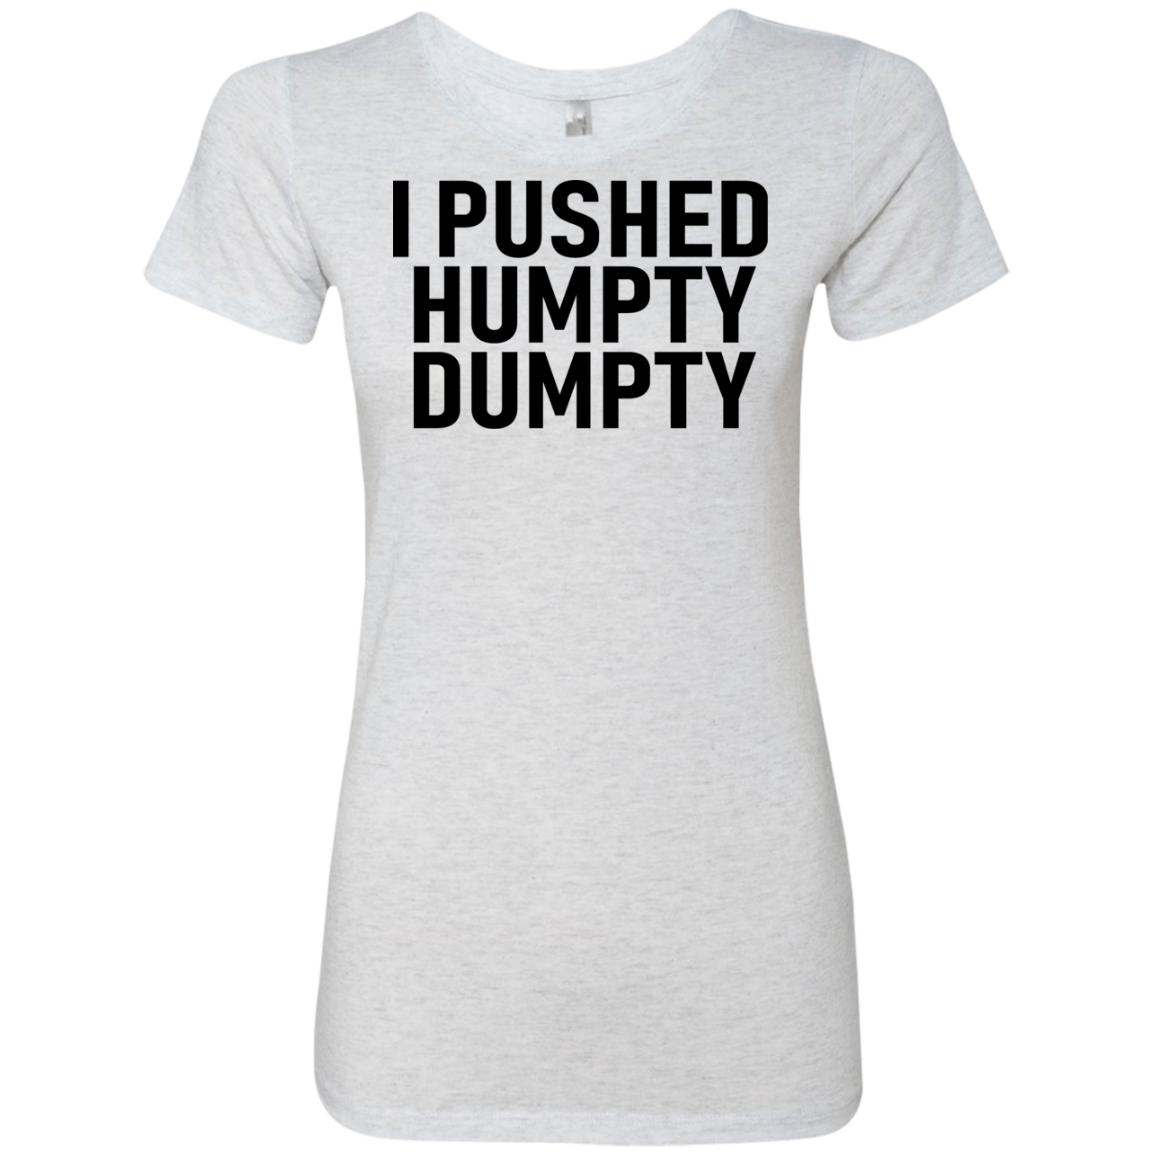 I Pushed Humpty Dumpty Women's Classic Tee